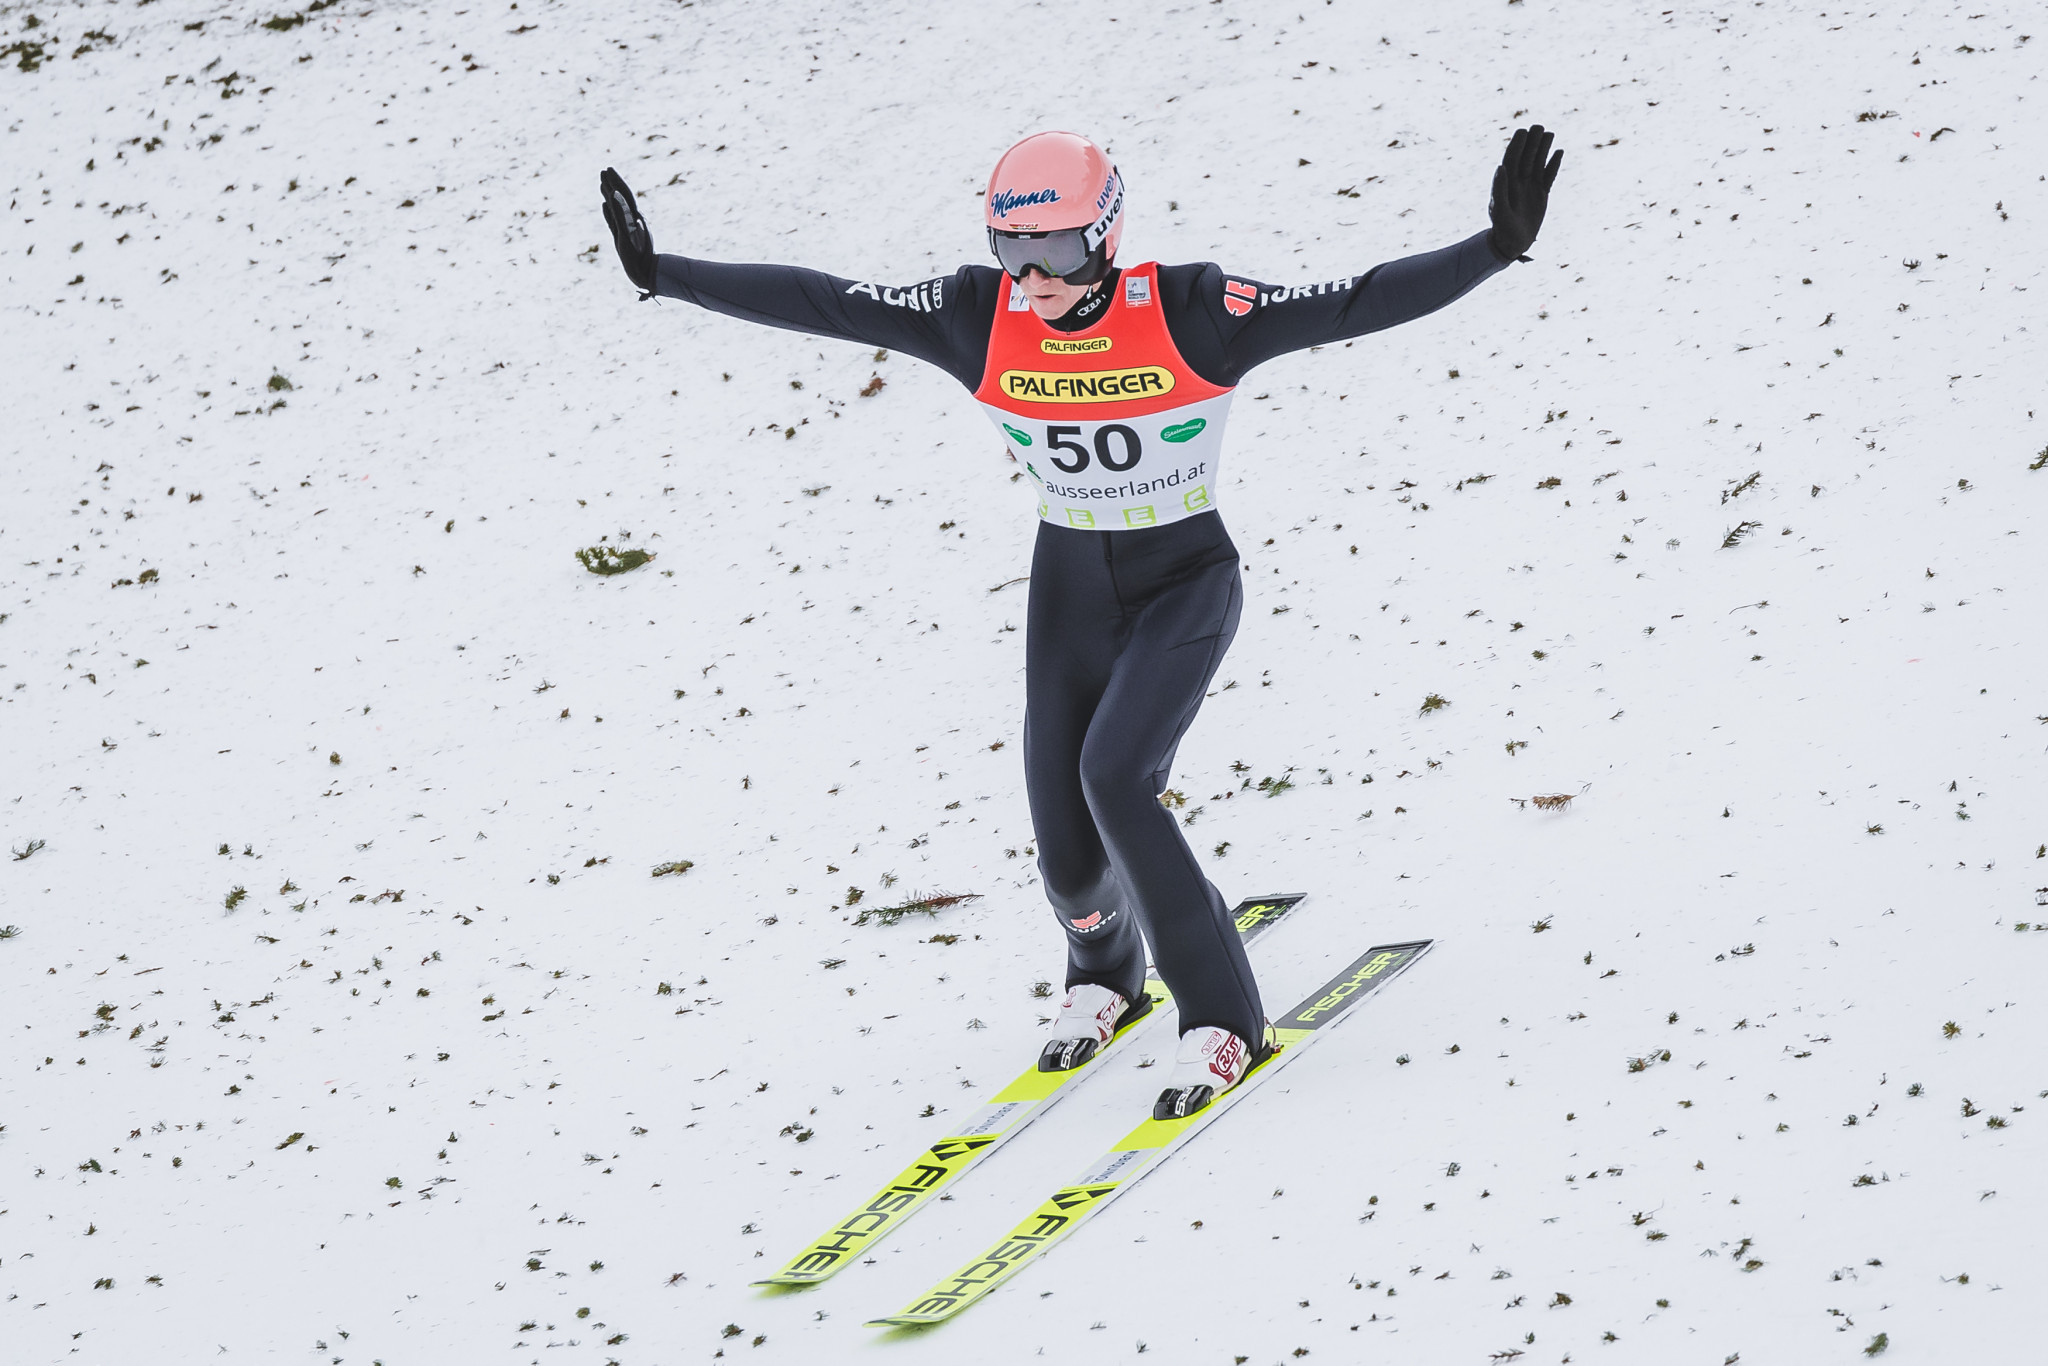 Geiger grabs third Ski Jumping World Cup win of season in Râșnov